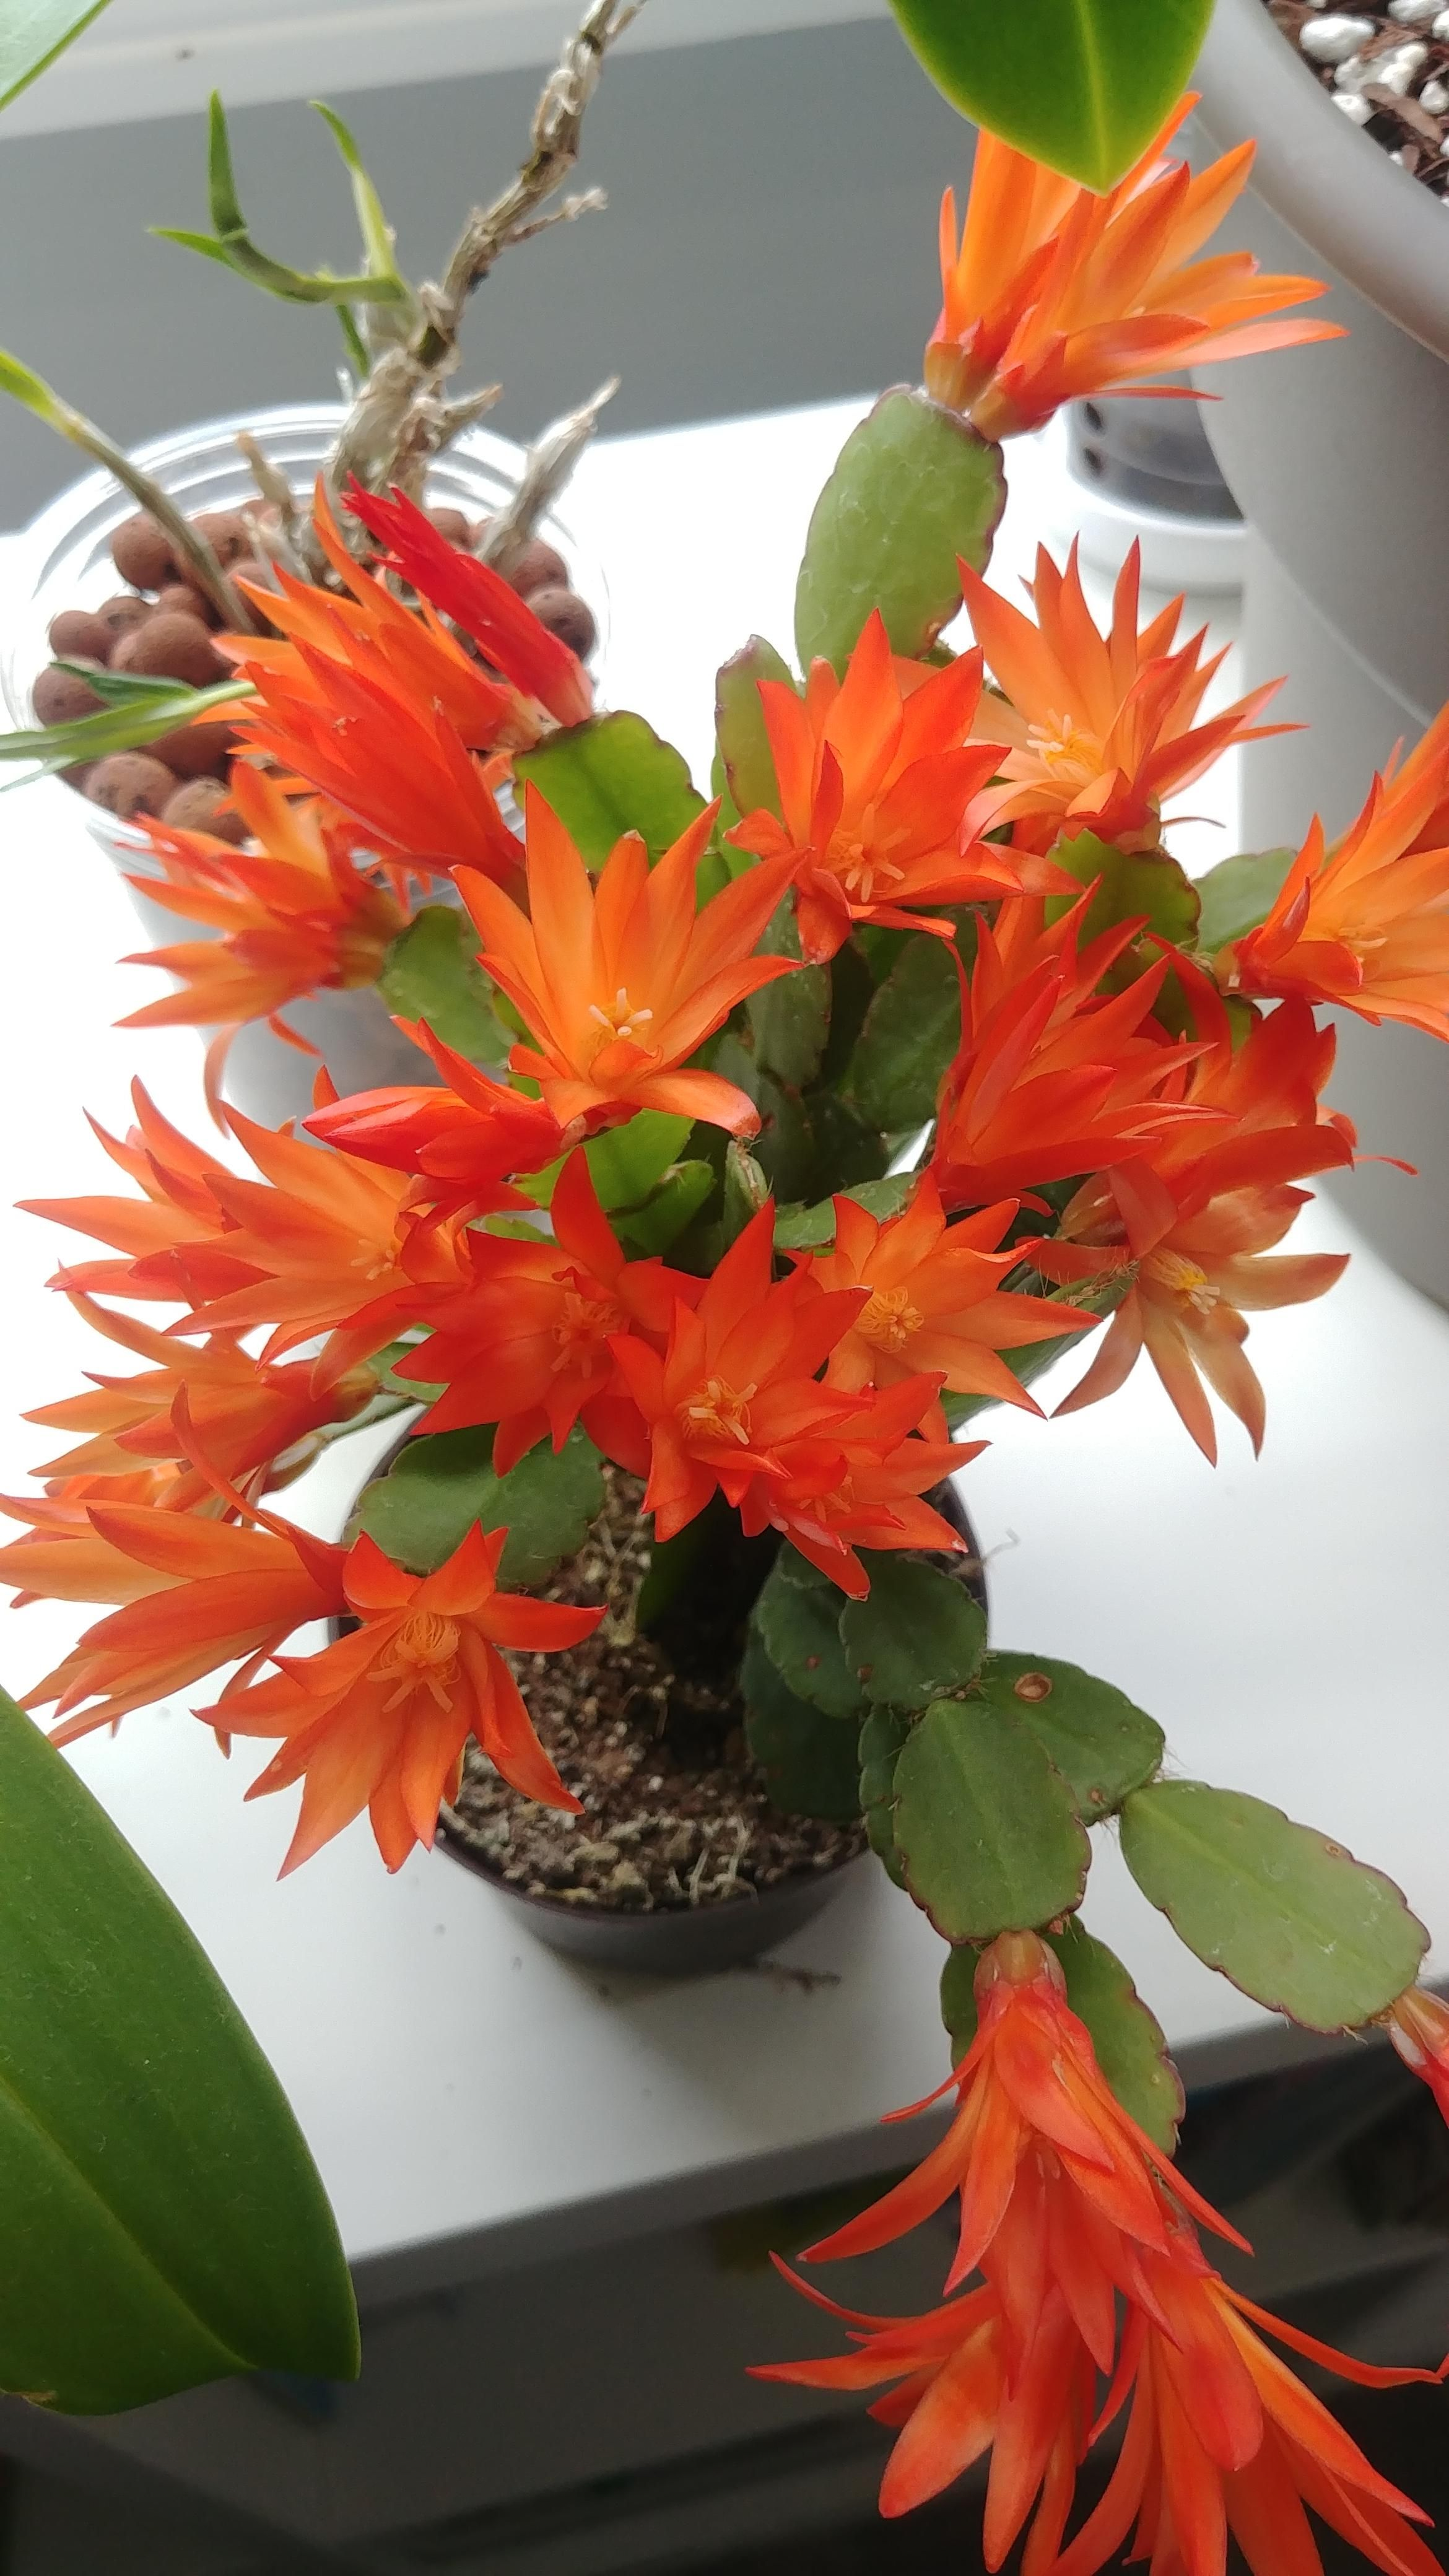 I Ve Been Looking For An Orange Blooming Easter Cactus For A While